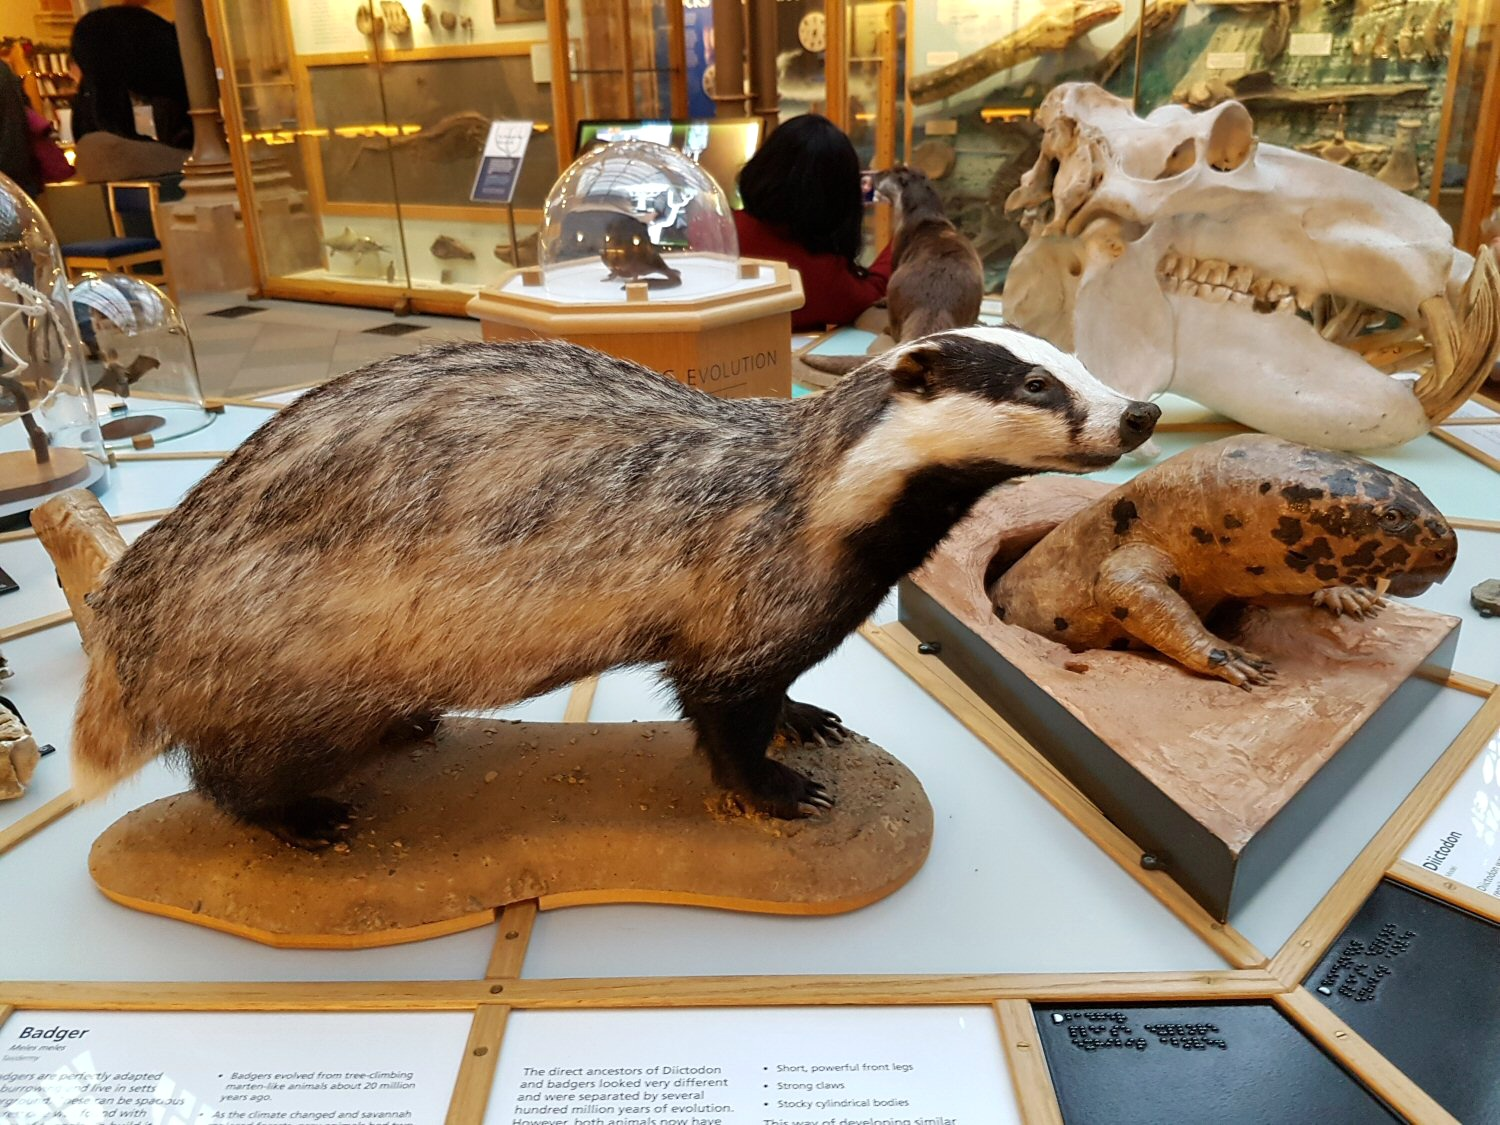 Badger - one of the exhibits at Oxford University Museum of Natural History. Our Oxford University natural history museum day out